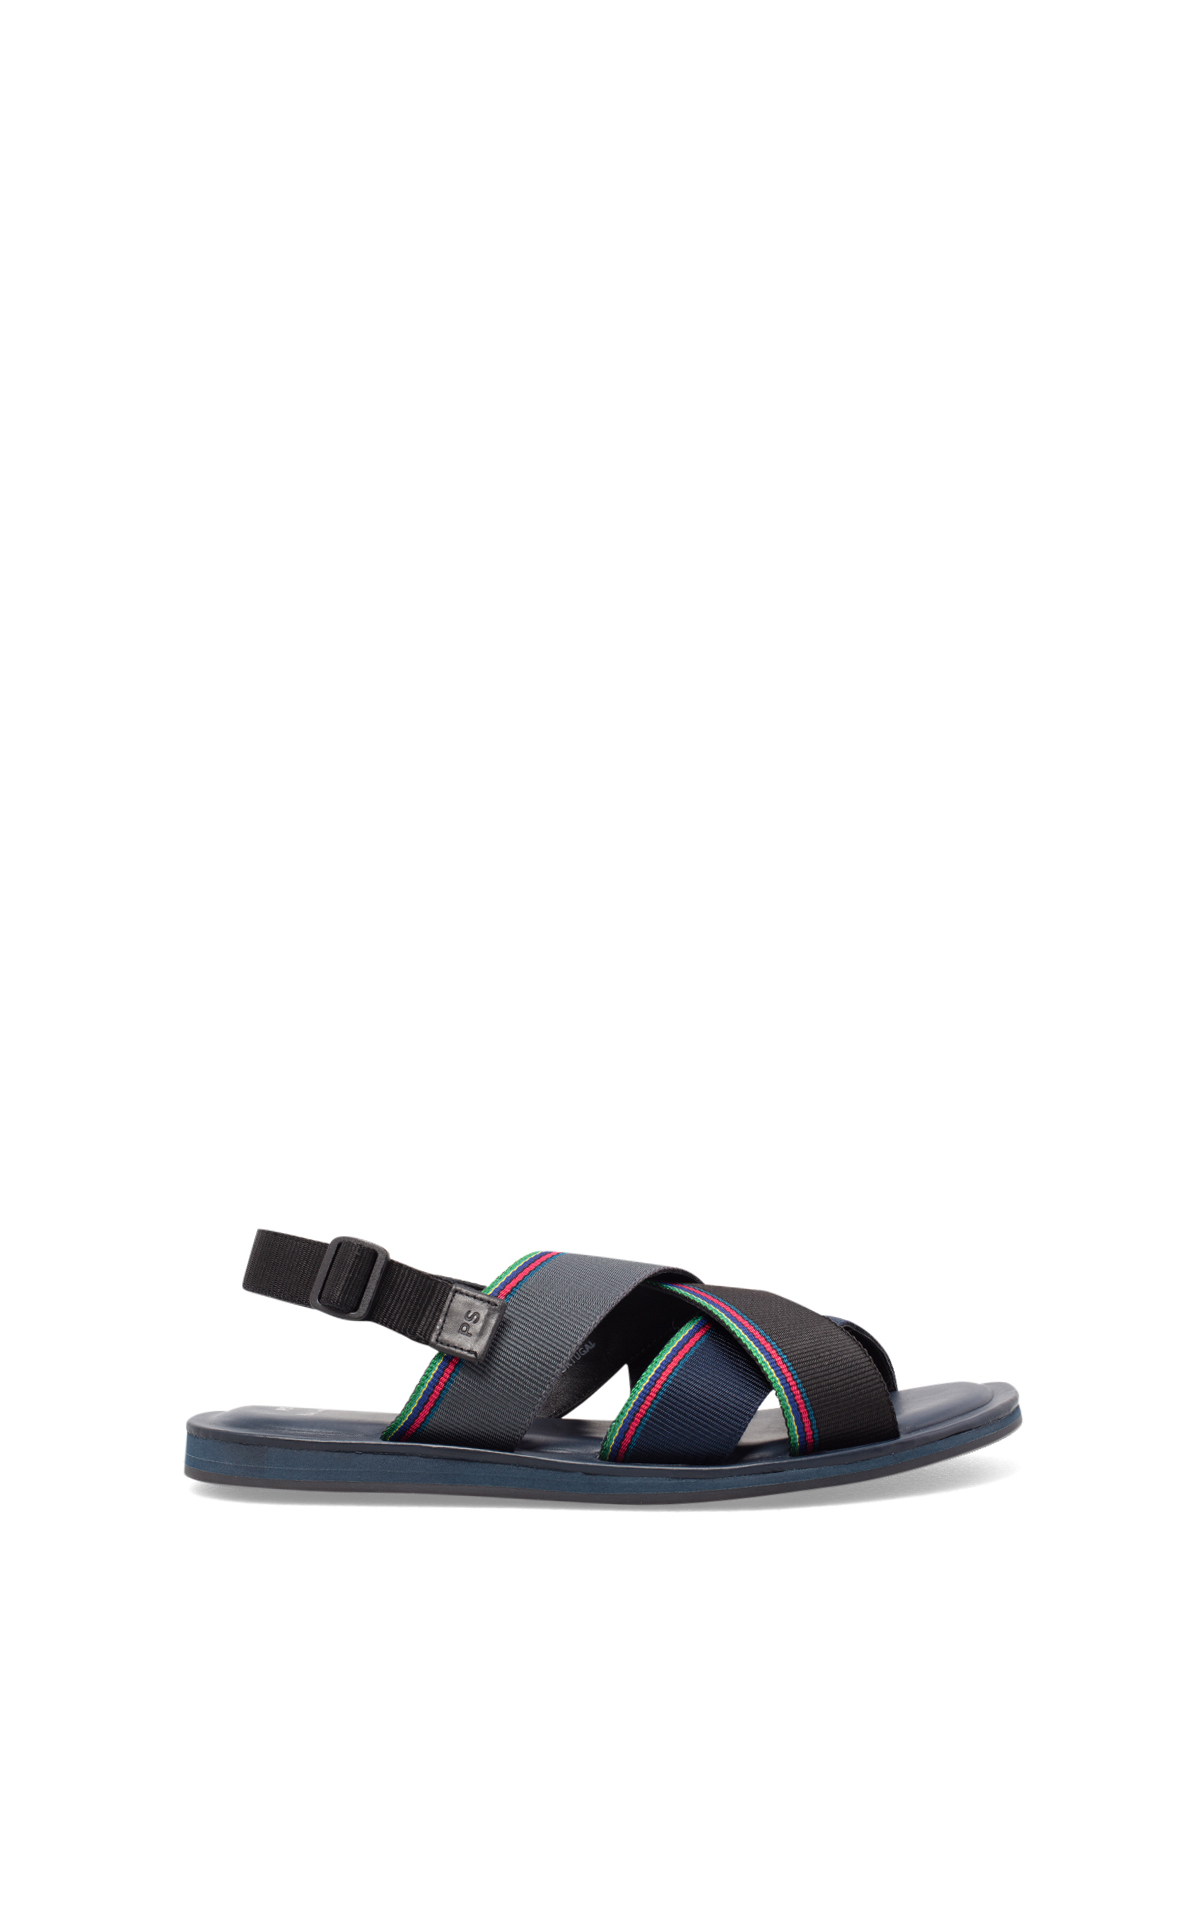 Paul Smith Sandales marines homme